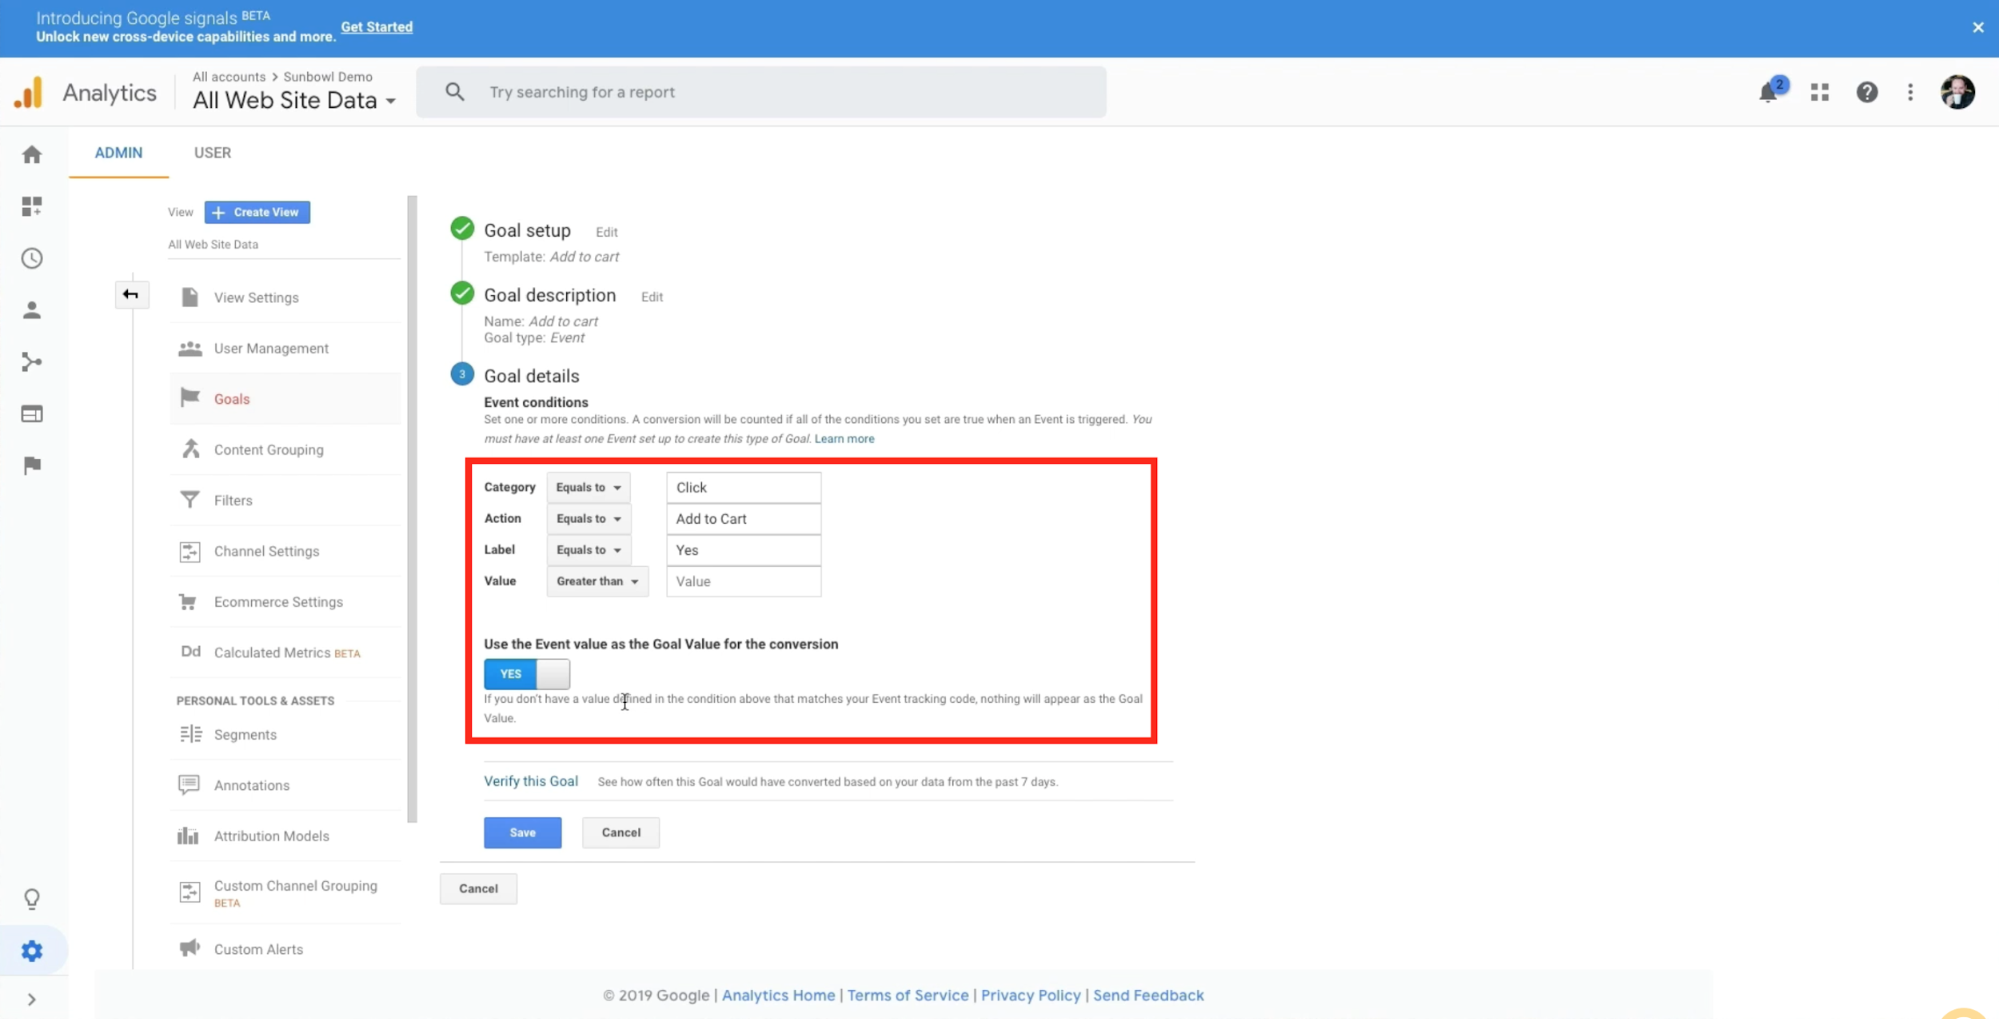 Merchant is adding the variables they used in the Shopify code and attaching them to the goal details in Google analytics.